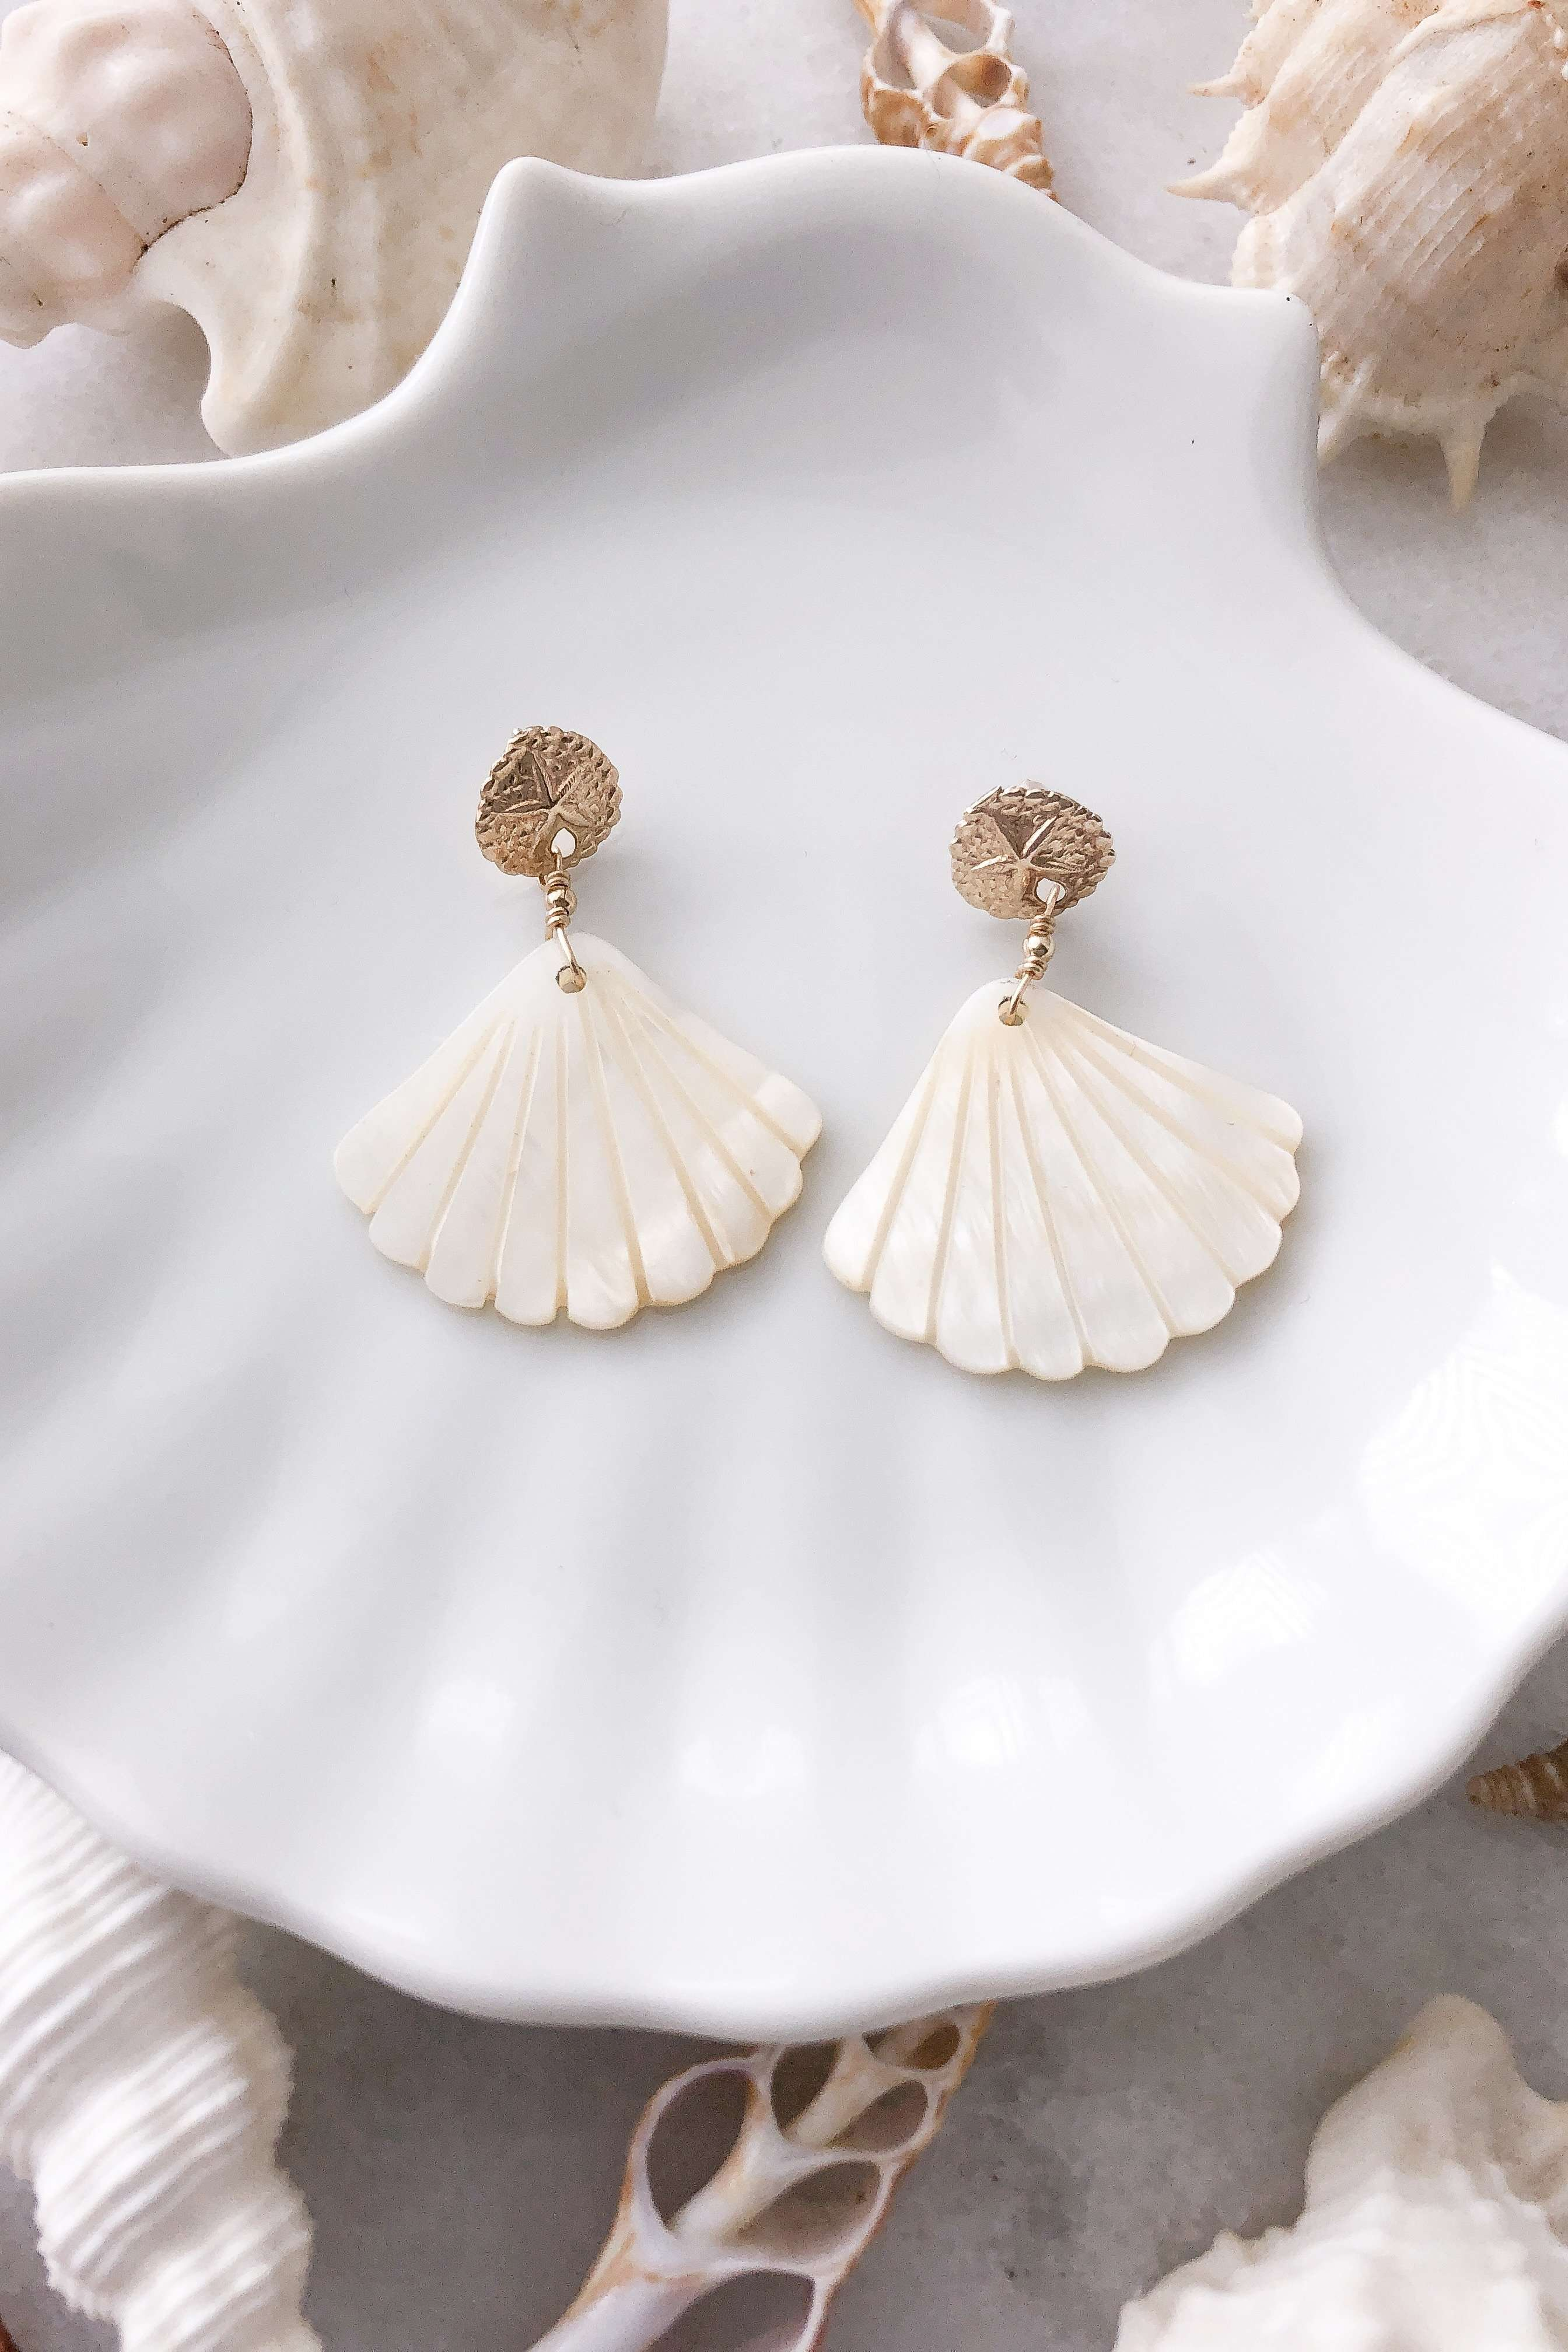 Sand Dollar & Pearl Shell Studs - Gold Fill, Earrings with  by Lunarsea Designs